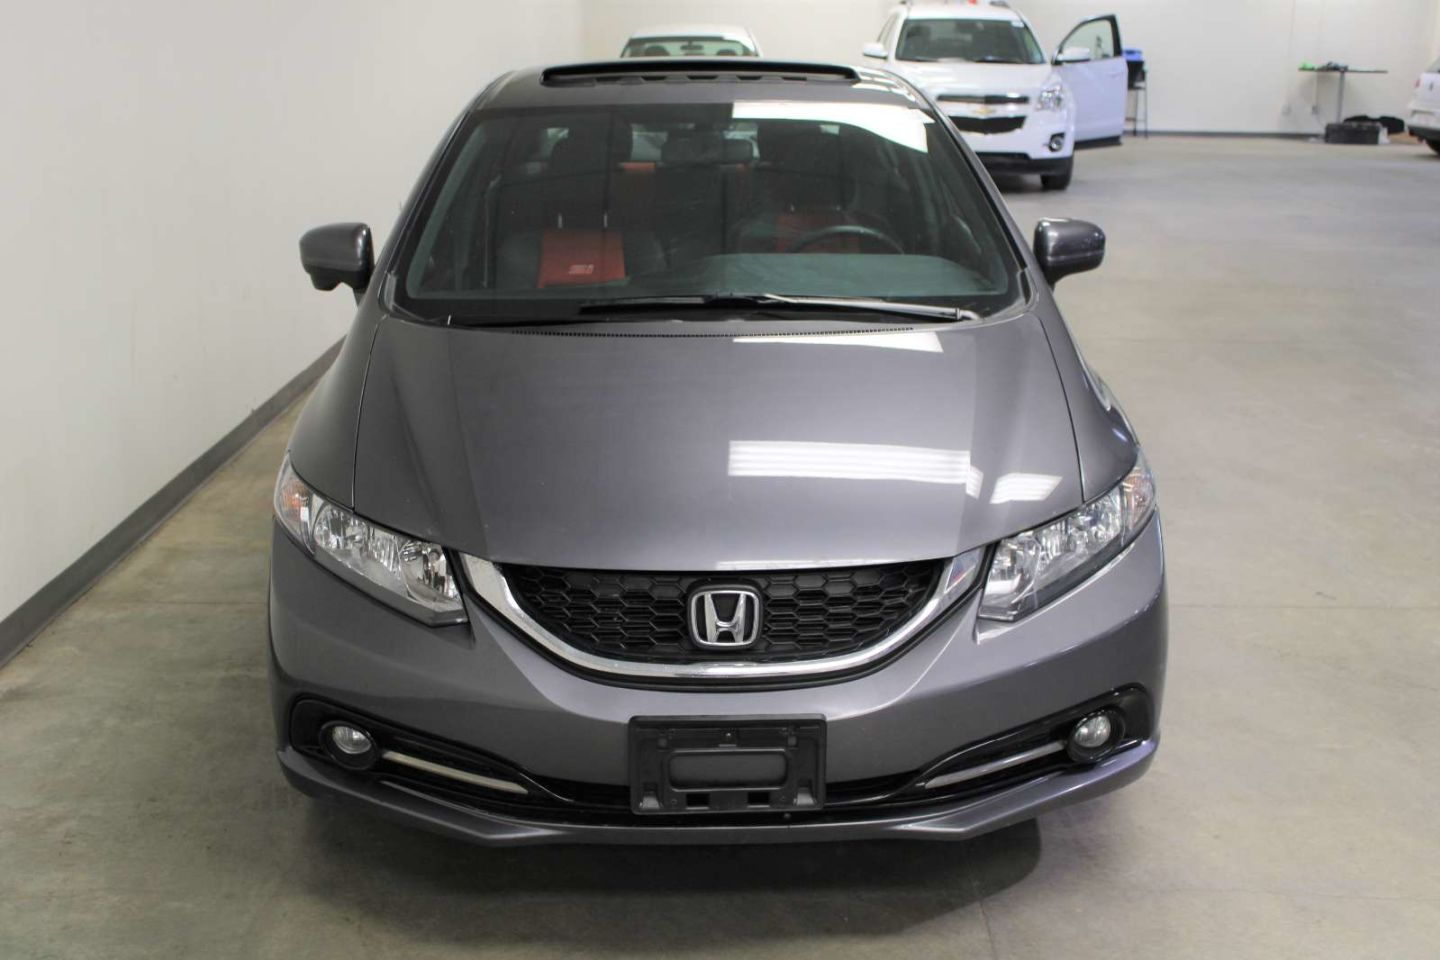 2015 Honda Civic Sedan Si for sale in Edmonton, Alberta